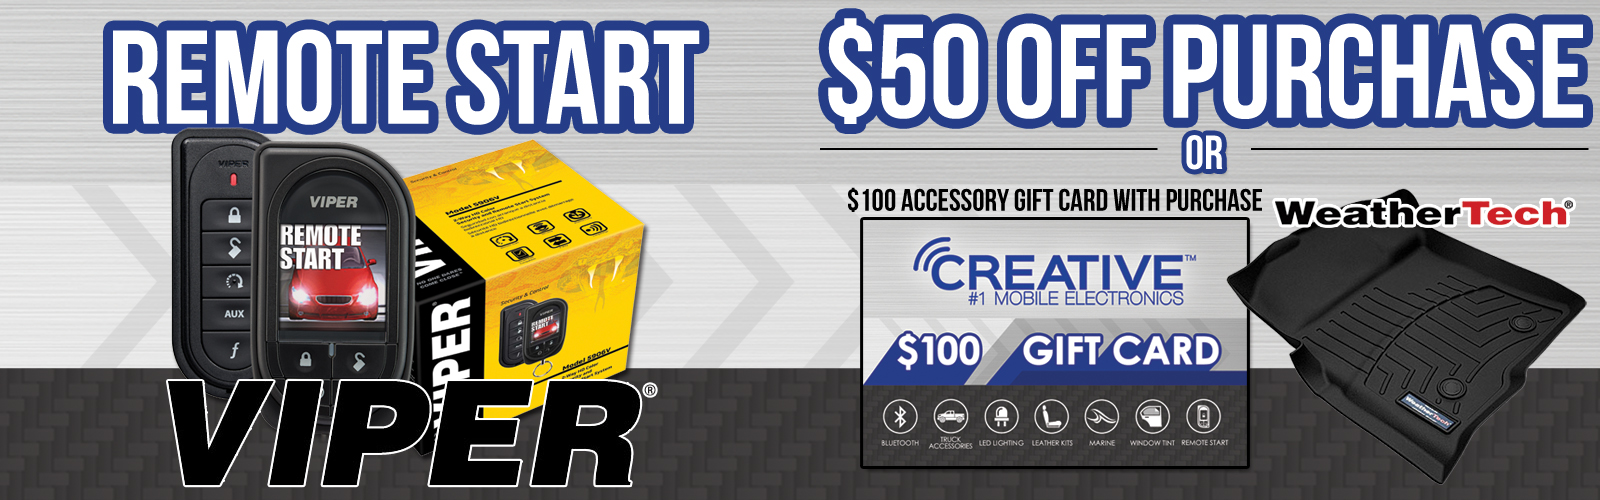 Buy a Remote Start Get a Free $100 WeatherTech Gift Card ...